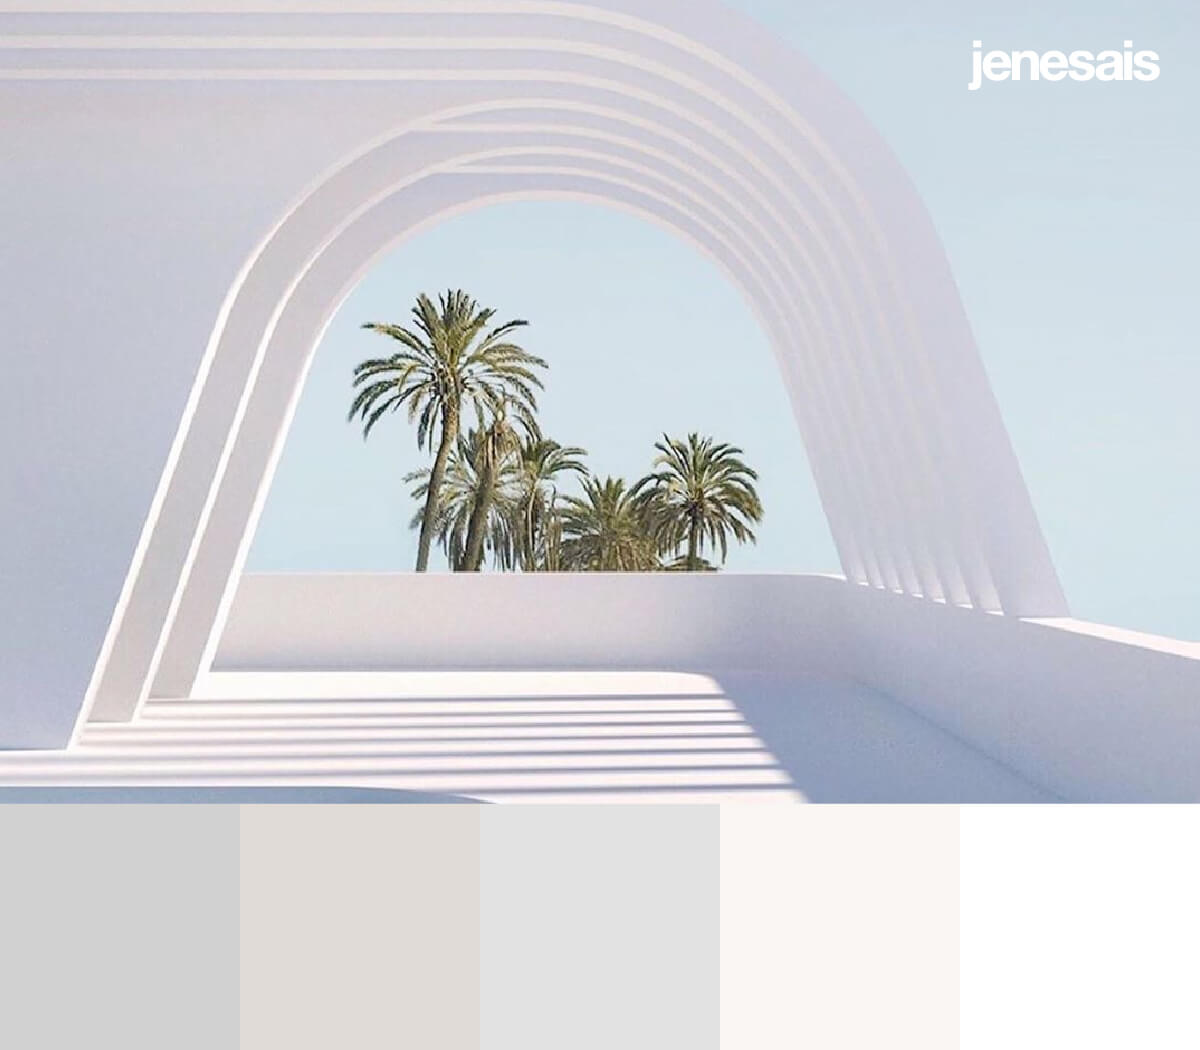 Aesthetic White color palette